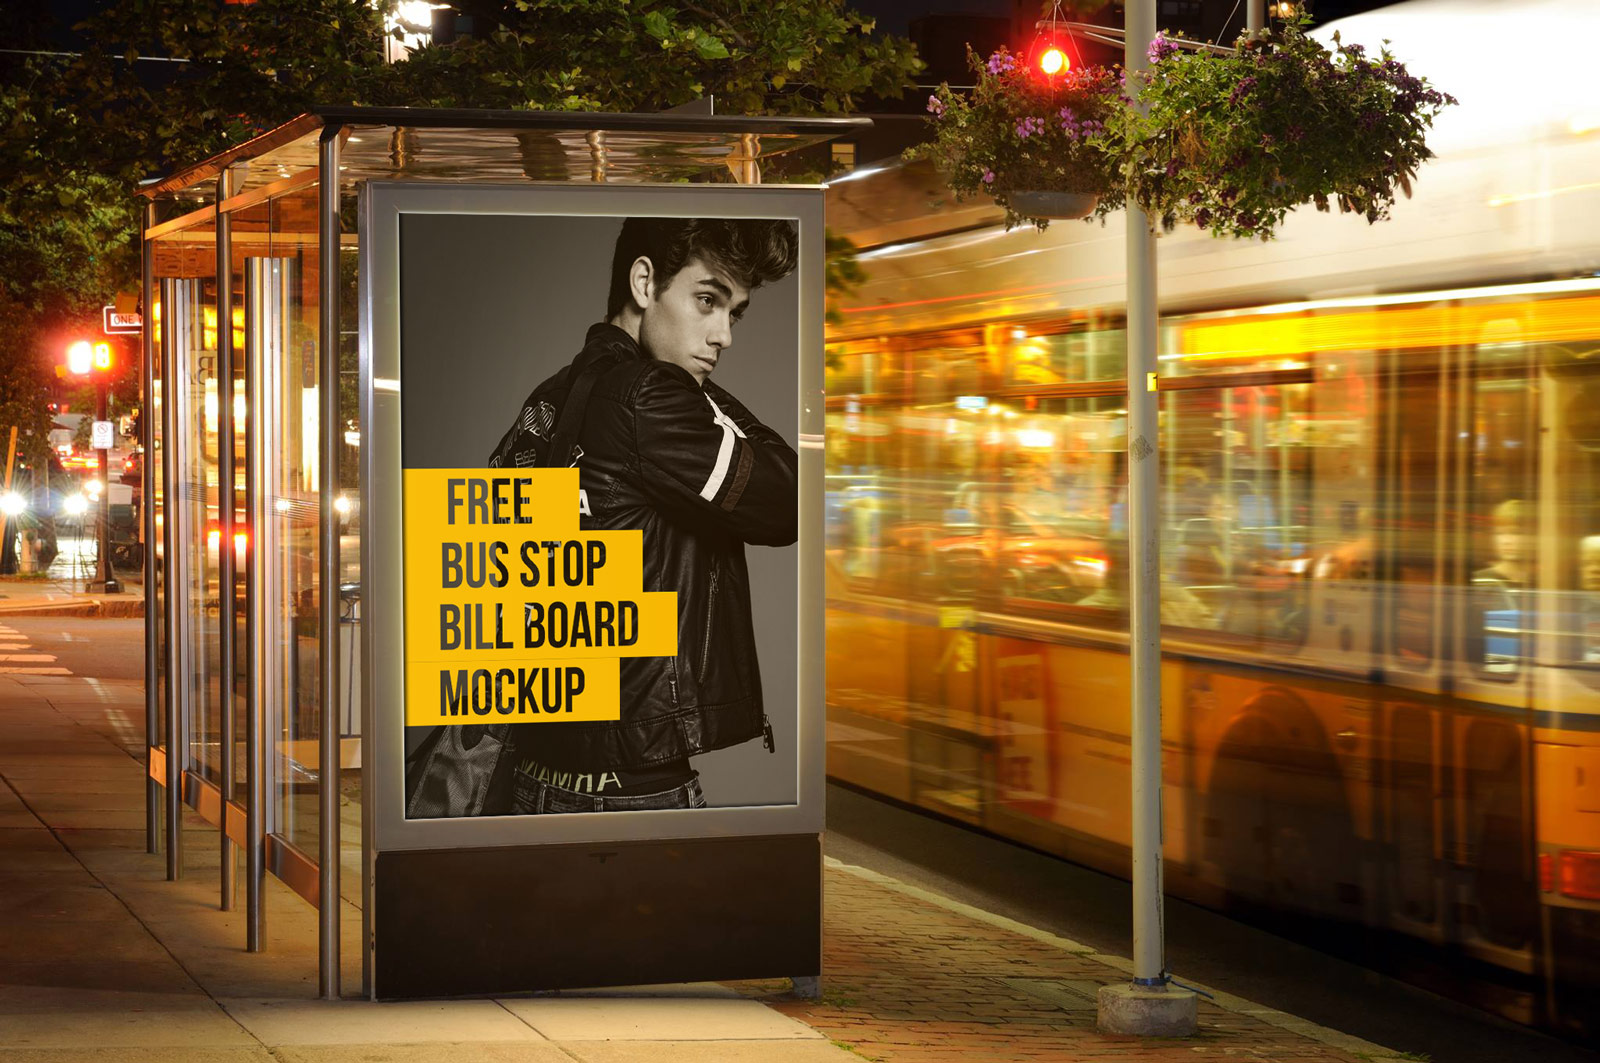 Free-Outdoor-Advertising-Bus-Stop-Billboard-Mockup-PSD